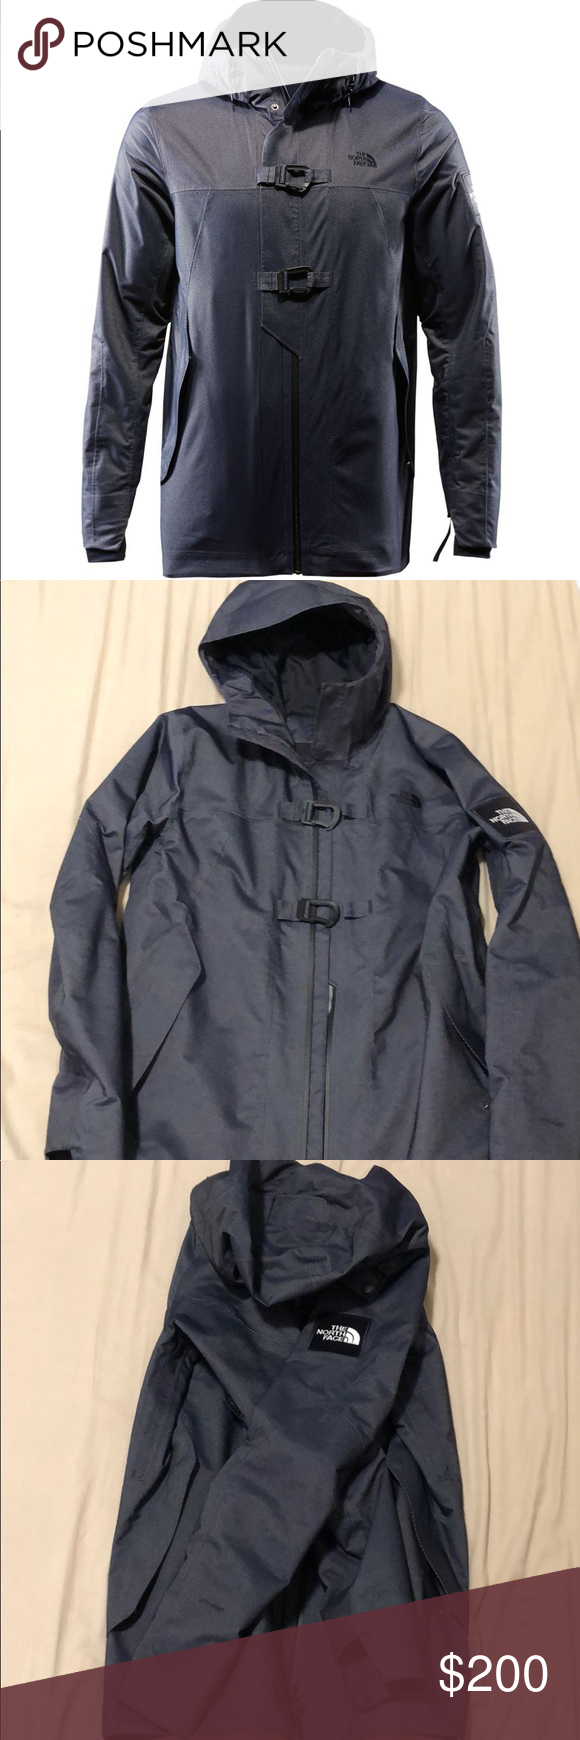 Rare  MEN S BLACK SERIES DRYVENT™ MOUNTAIN JACKET AUTHENTIC  The North Face  Dark Denim e48e2db57